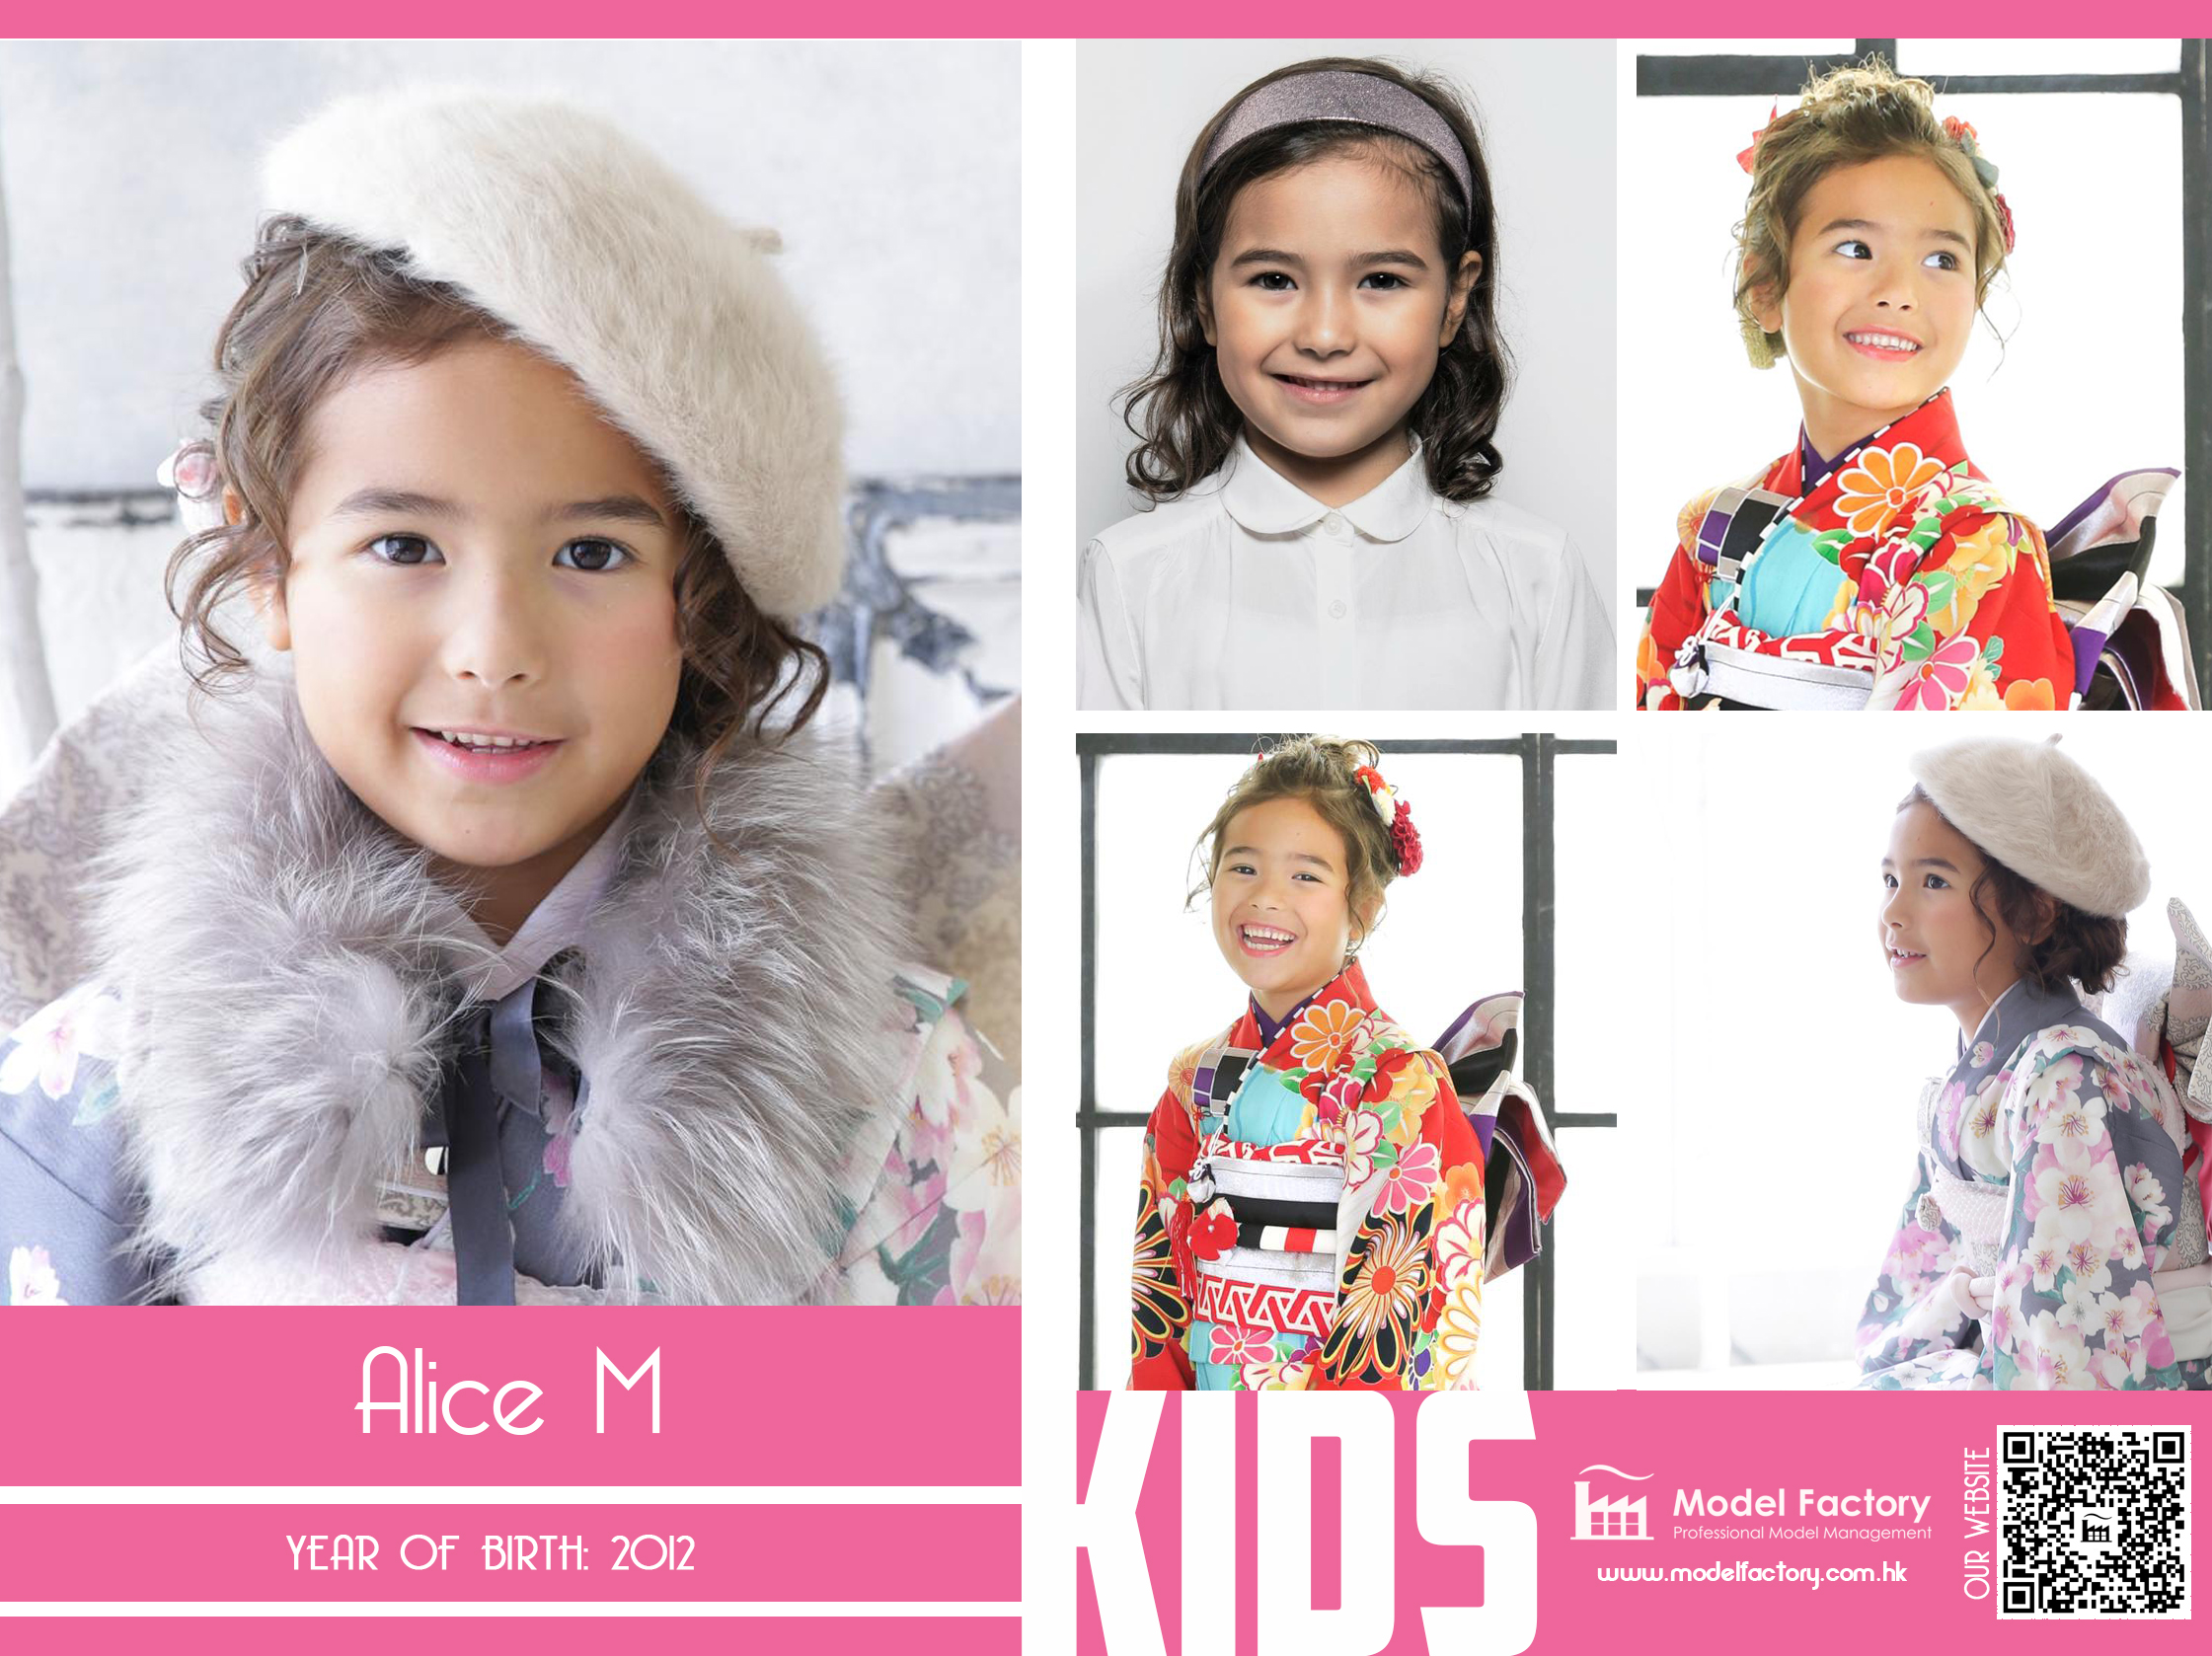 Model Factory Mix Kids Model Alice M